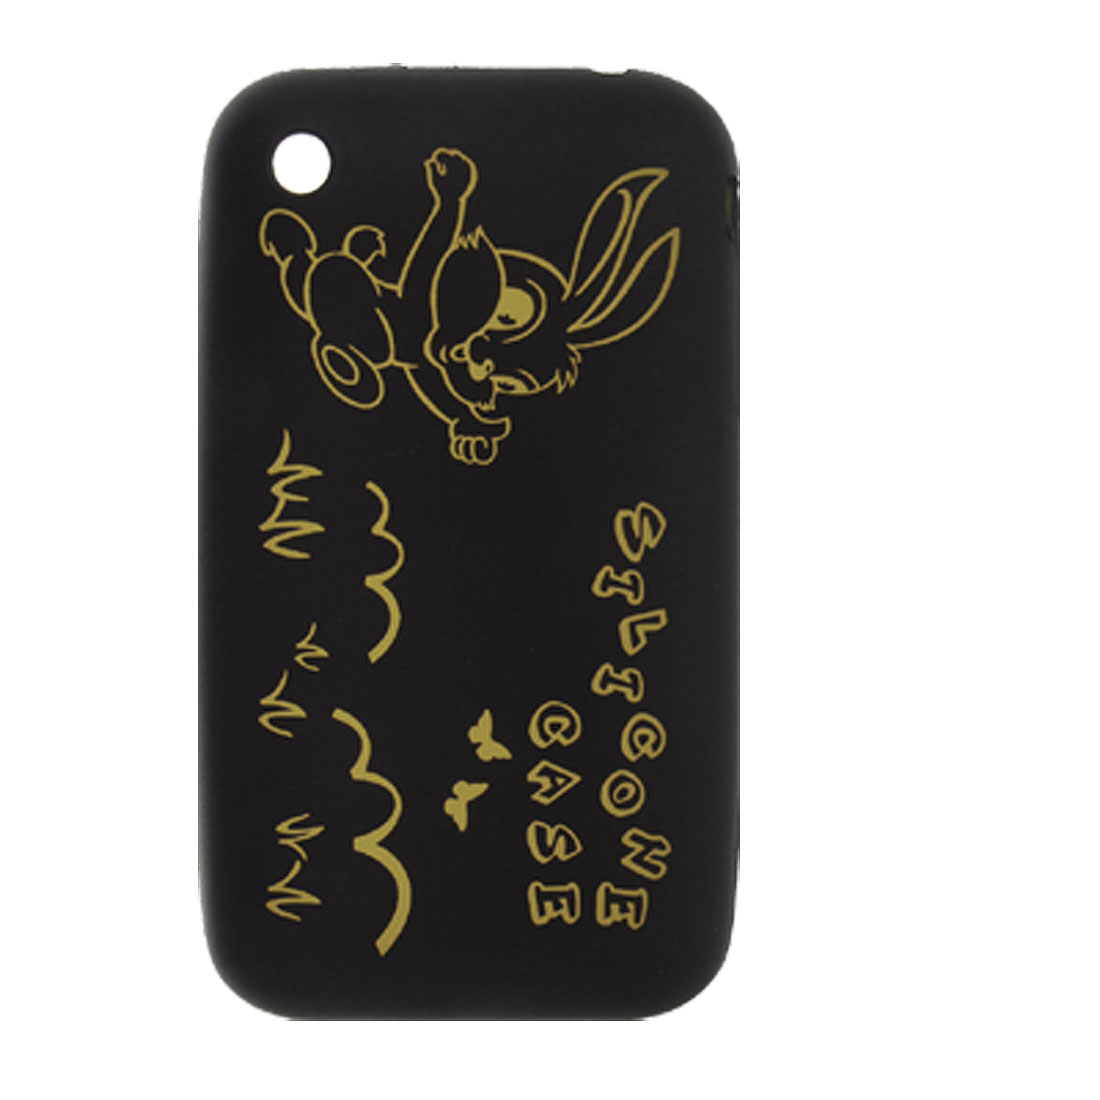 Black Silicone Rabbit Print Back Cover Case for iPhone 3GS